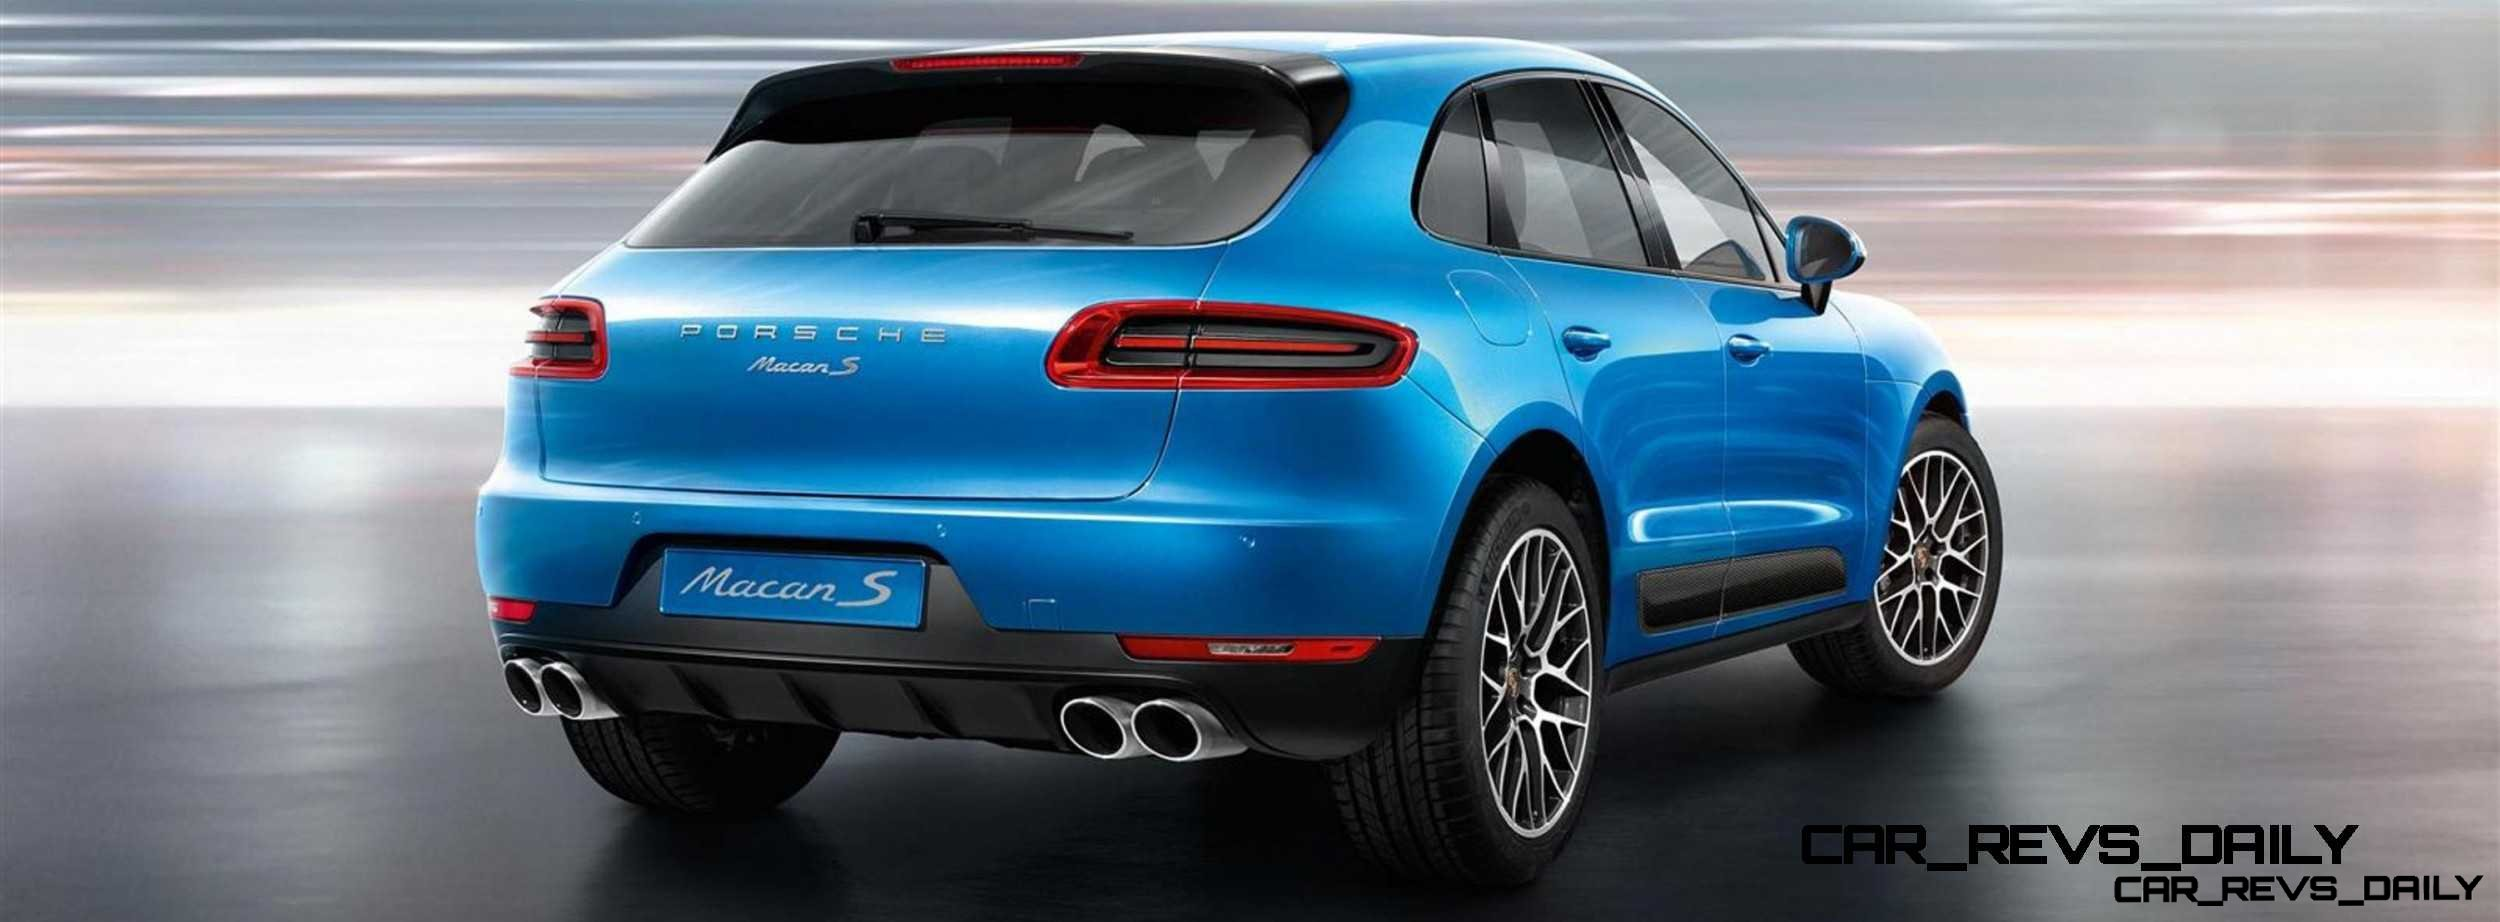 2015 Porsche Macan - Latest Images - CarRevsDaily.com 98